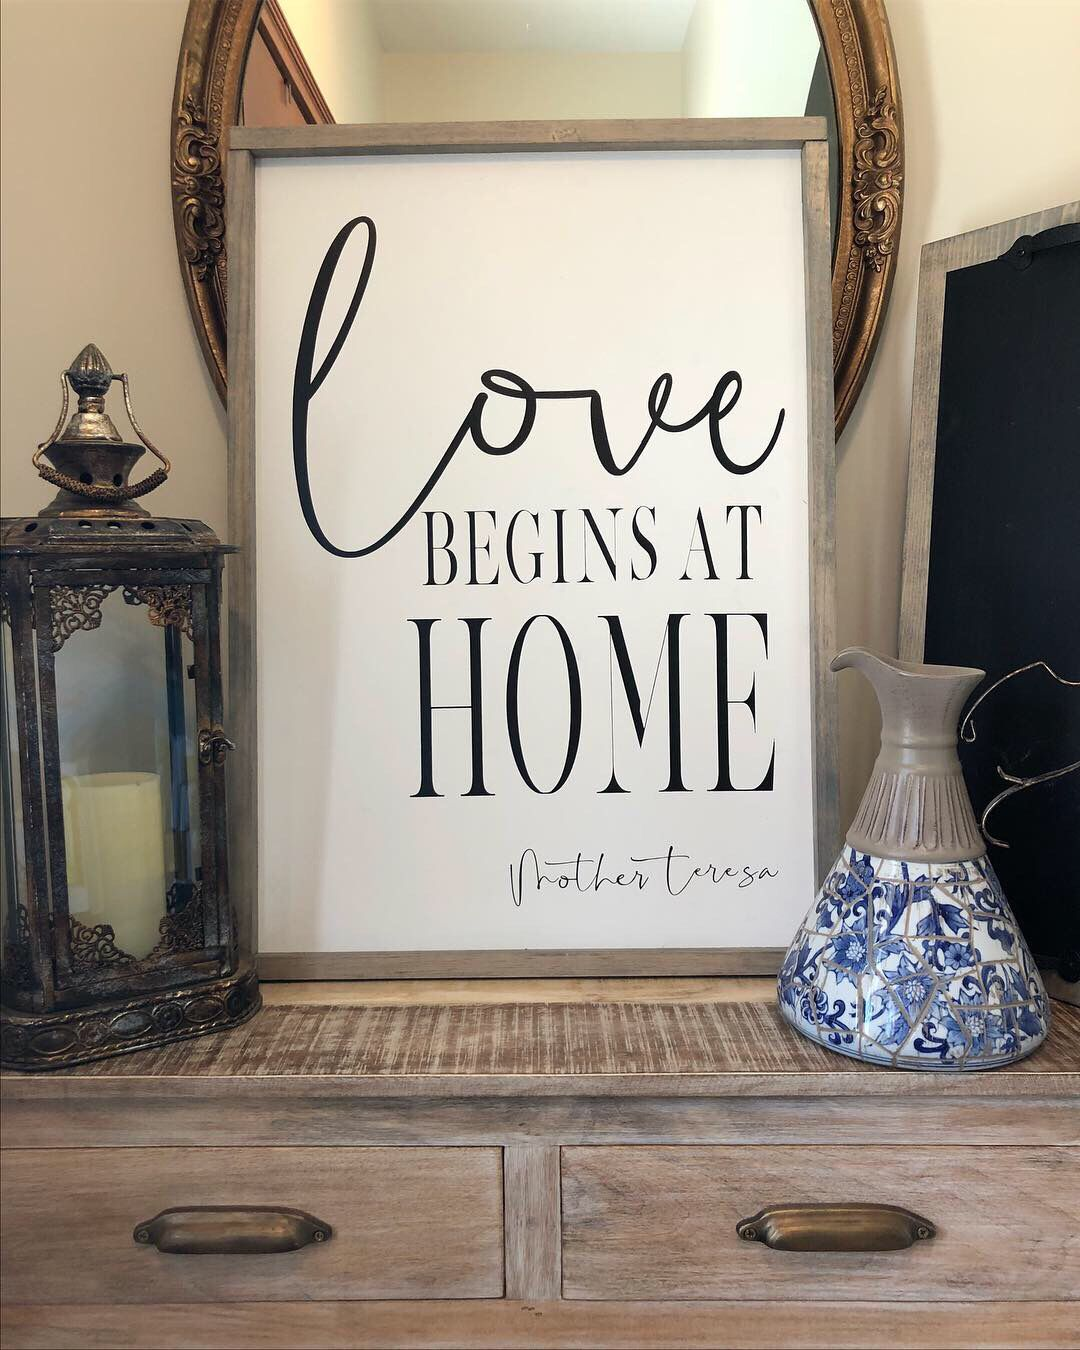 Wood sign painted wood sign housewarming gift  home decor